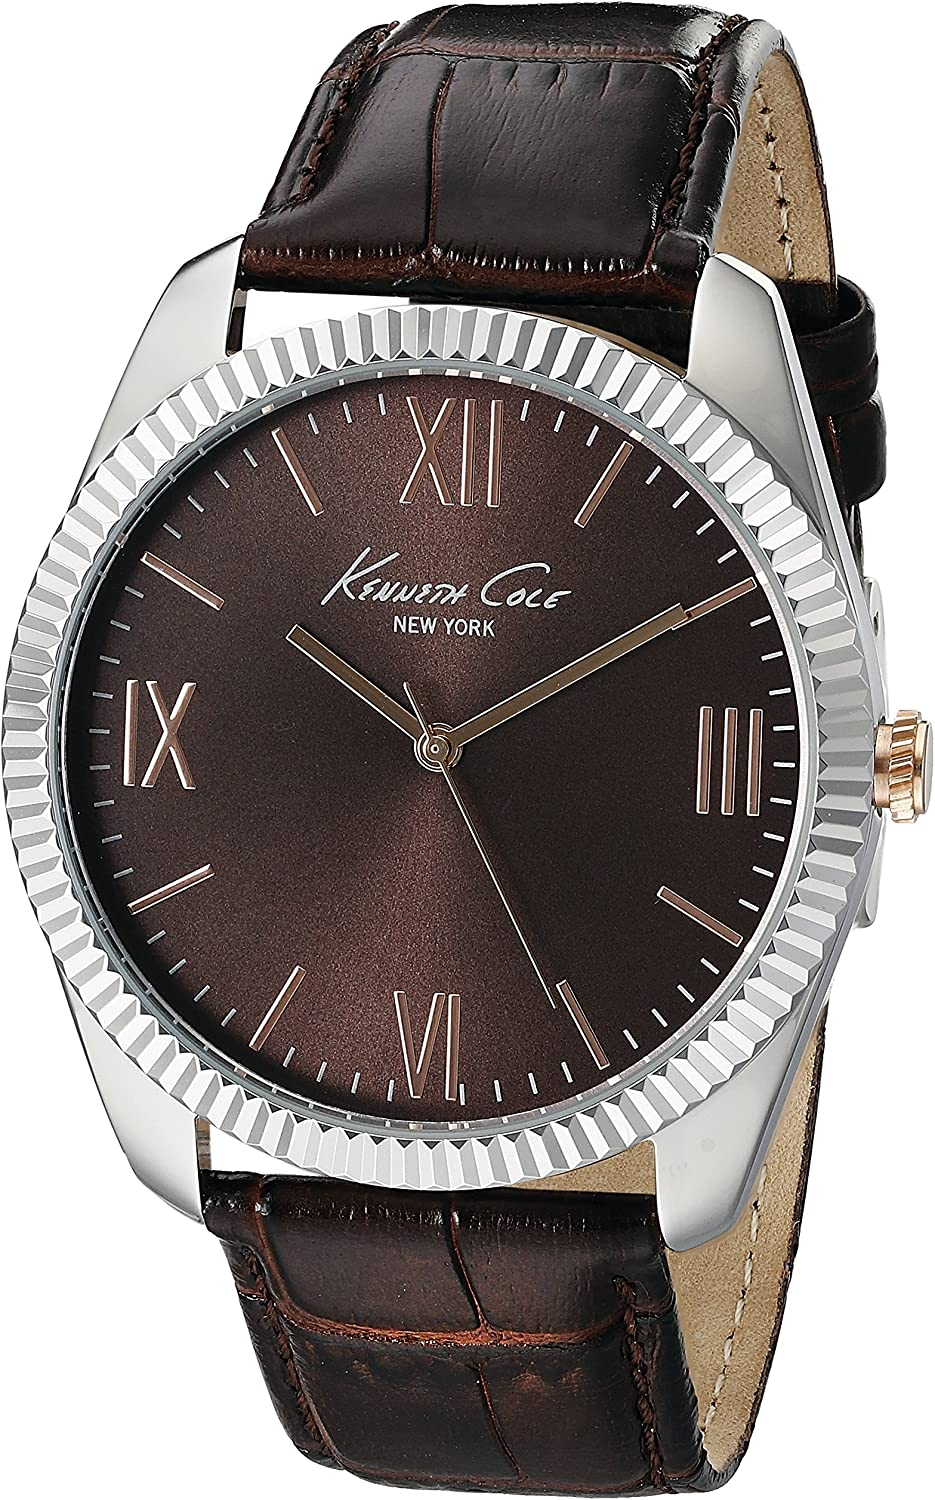 Kenneth Cole New York Men s 10019681 Silver-Tone Watch with Brown Dial and Brown Strap